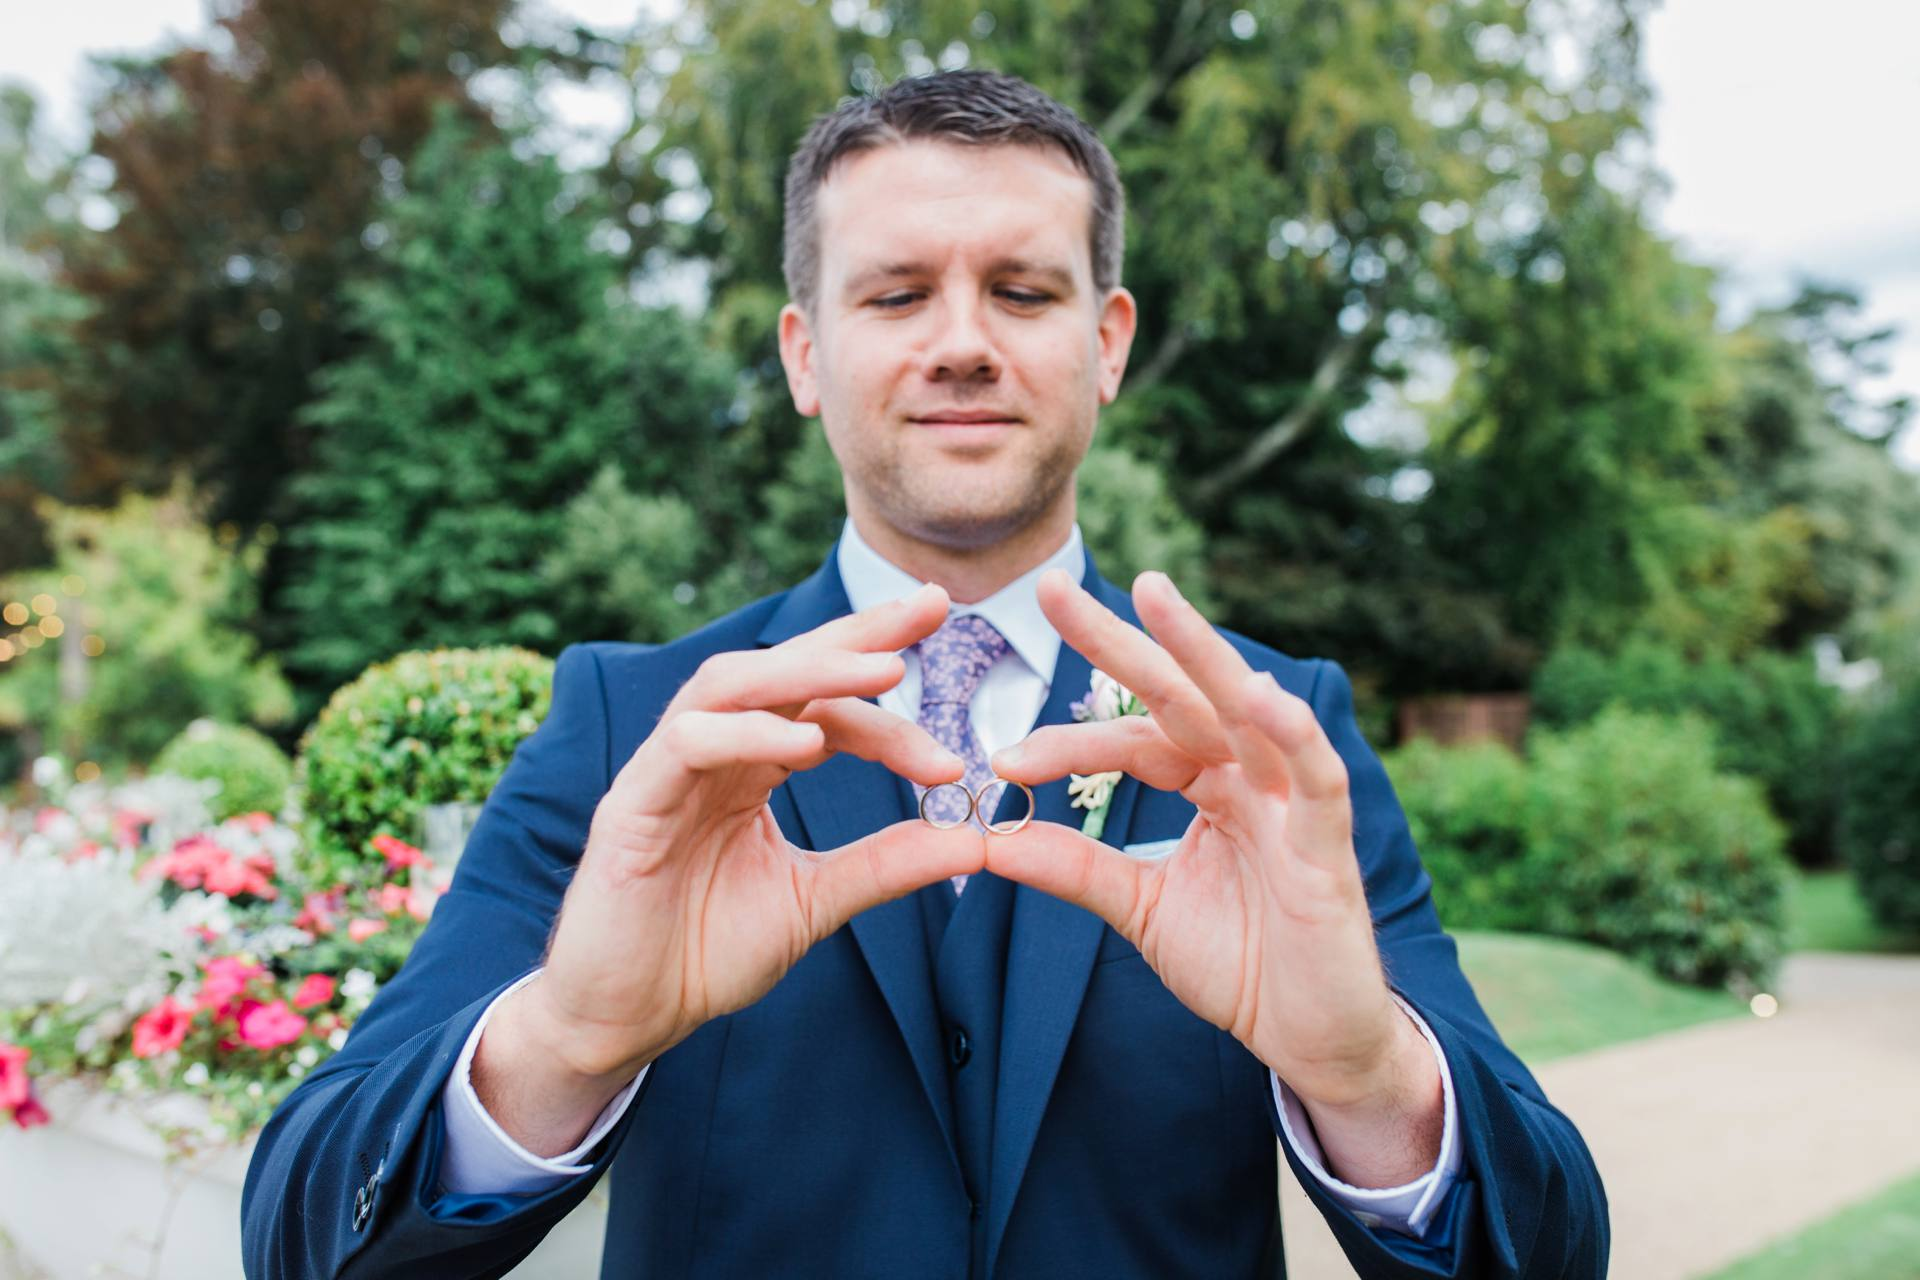 Groomsman holding up wedding rings